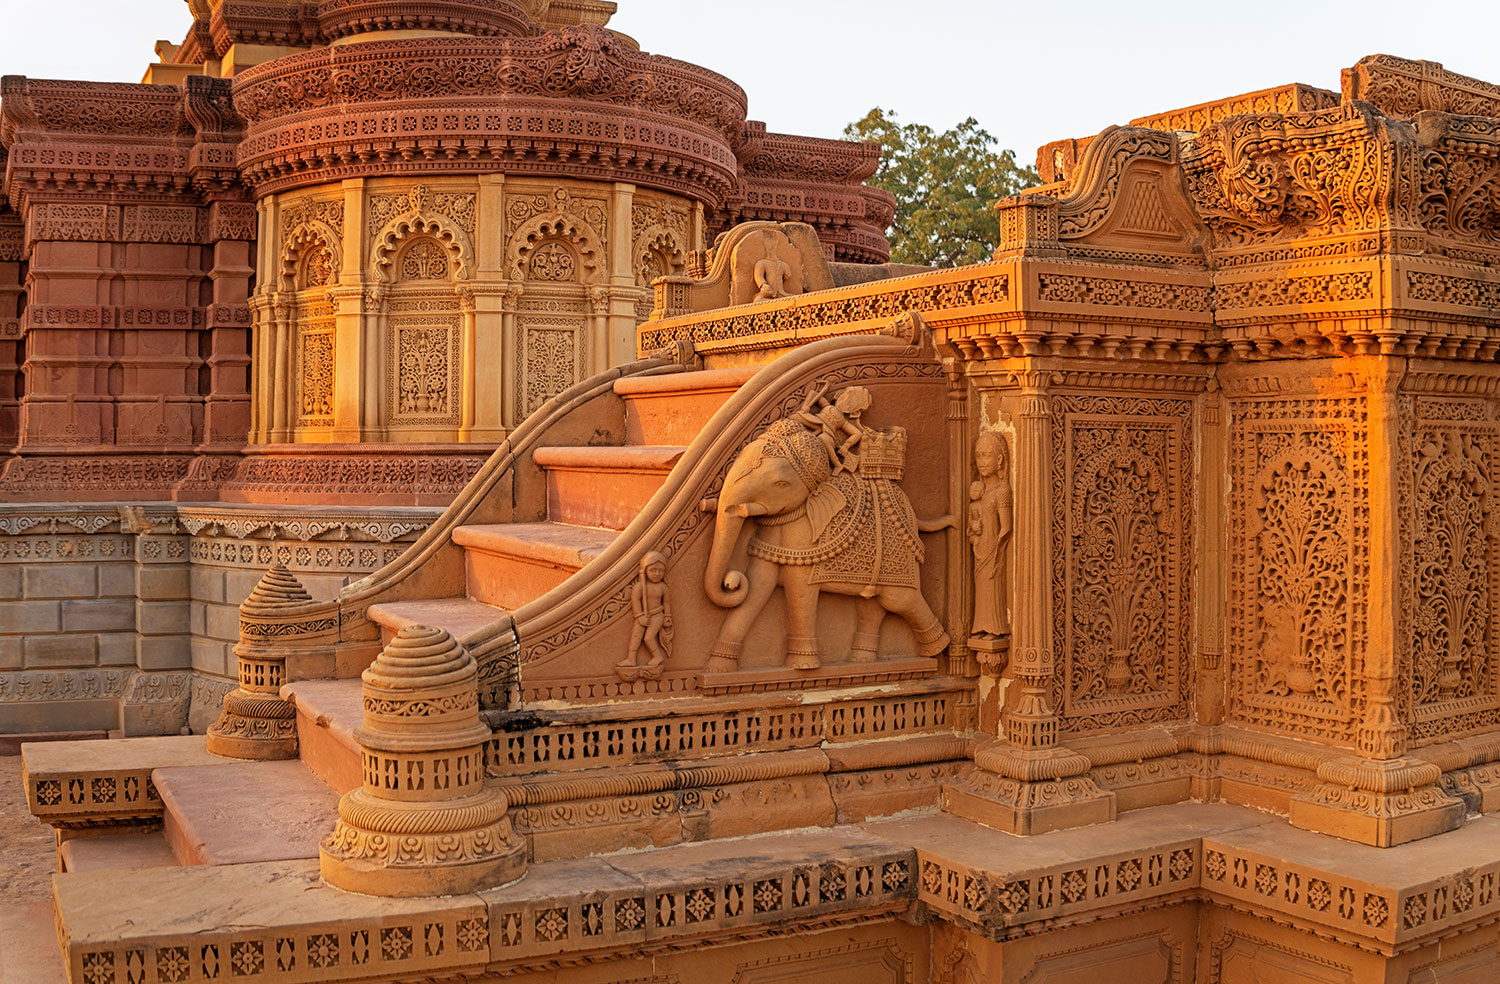 Royal Chhatardis